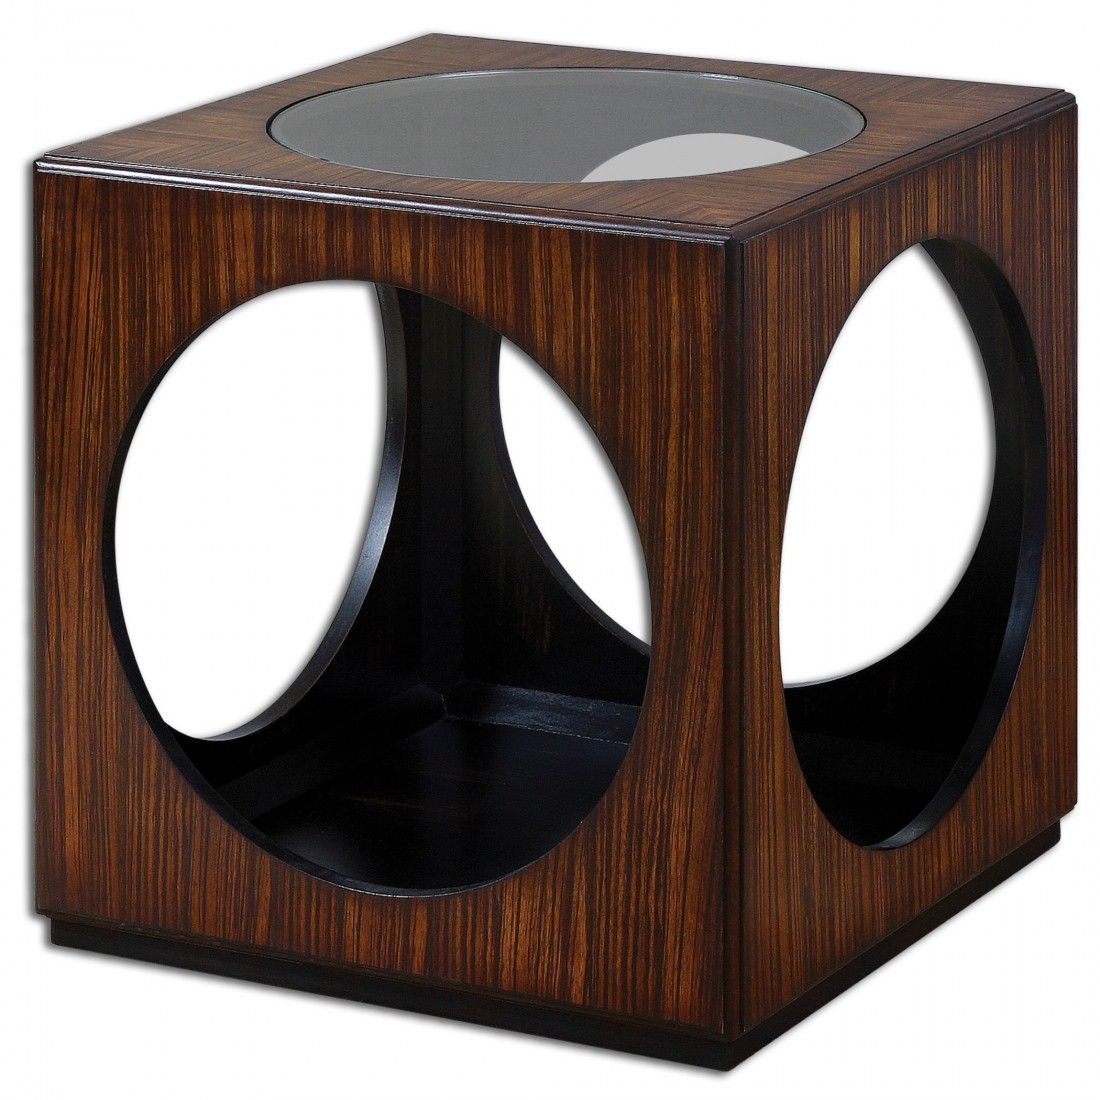 uttermost tura cube accent table andson dice red richly grained zebra wood veneer with open cutouts and clear glass top teak furniture sydney home decor better homes gardens